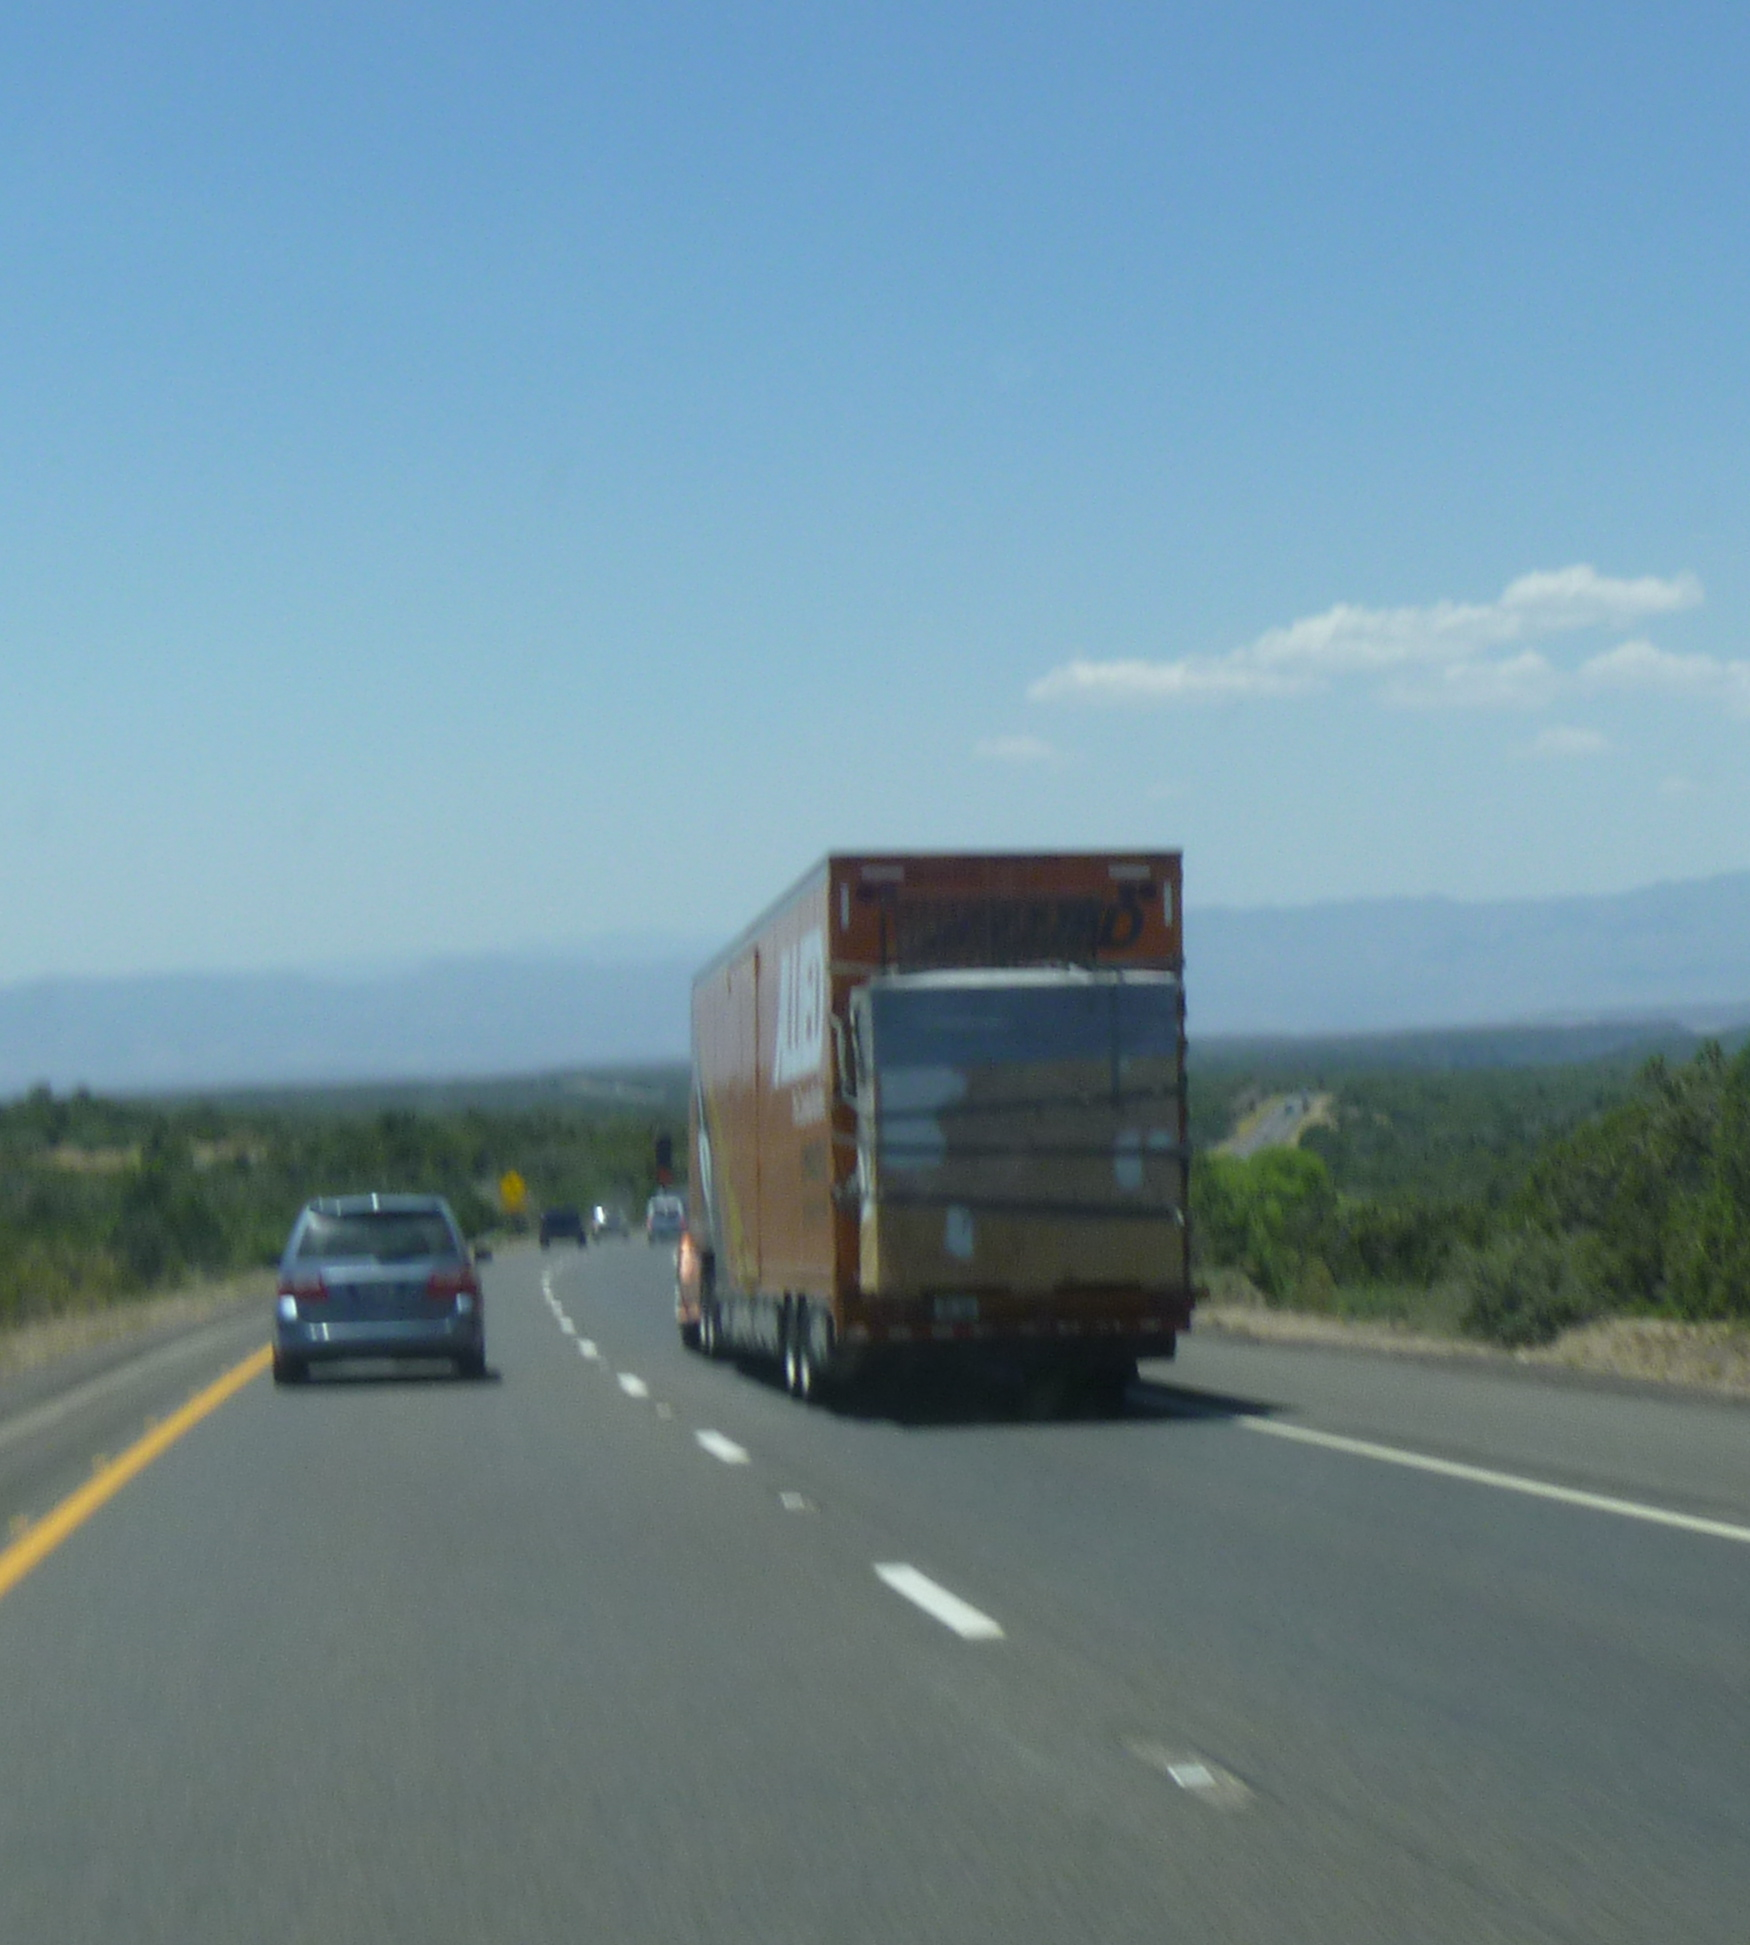 Chevrolet Flagstaff: Route 66 Holbrook AZ To Flagstaff AZ (and On To